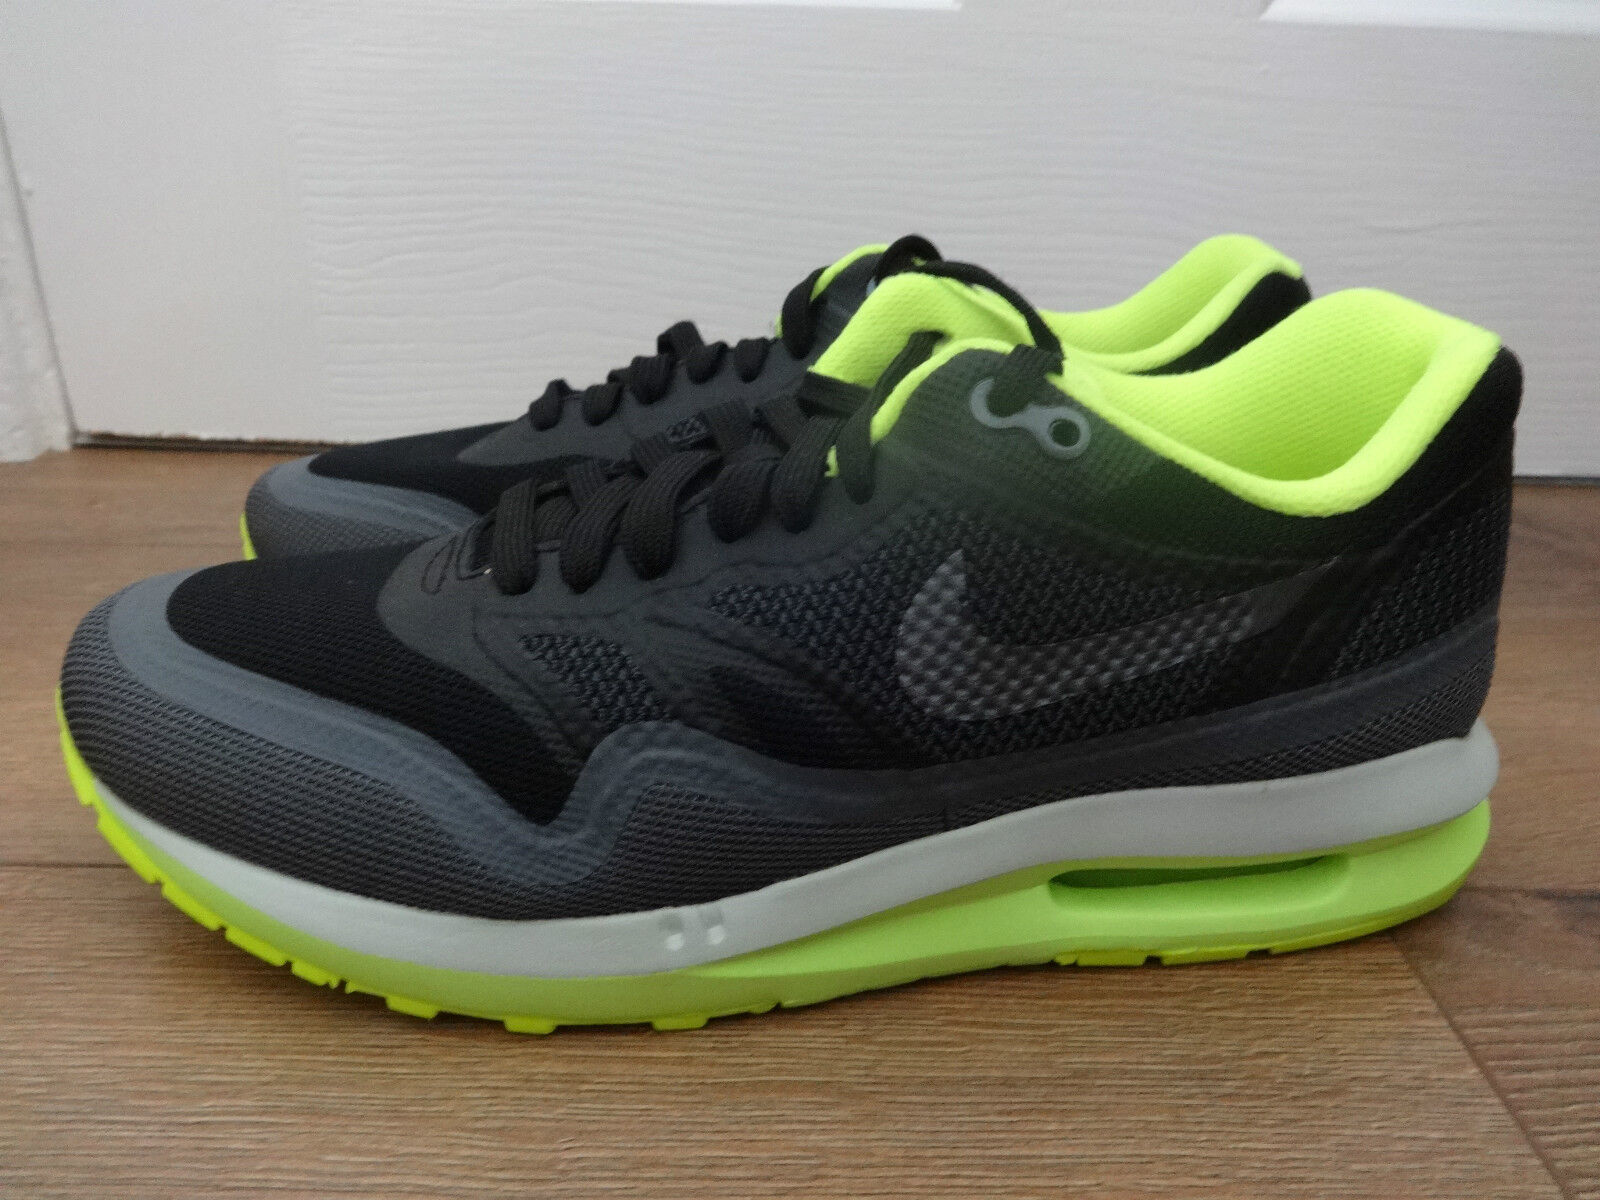 Nike Air Max Lunar 1 Damenss eu trainers 654937 002 uk 5.5 eu Damenss 39 us 8 NEW d0e61d